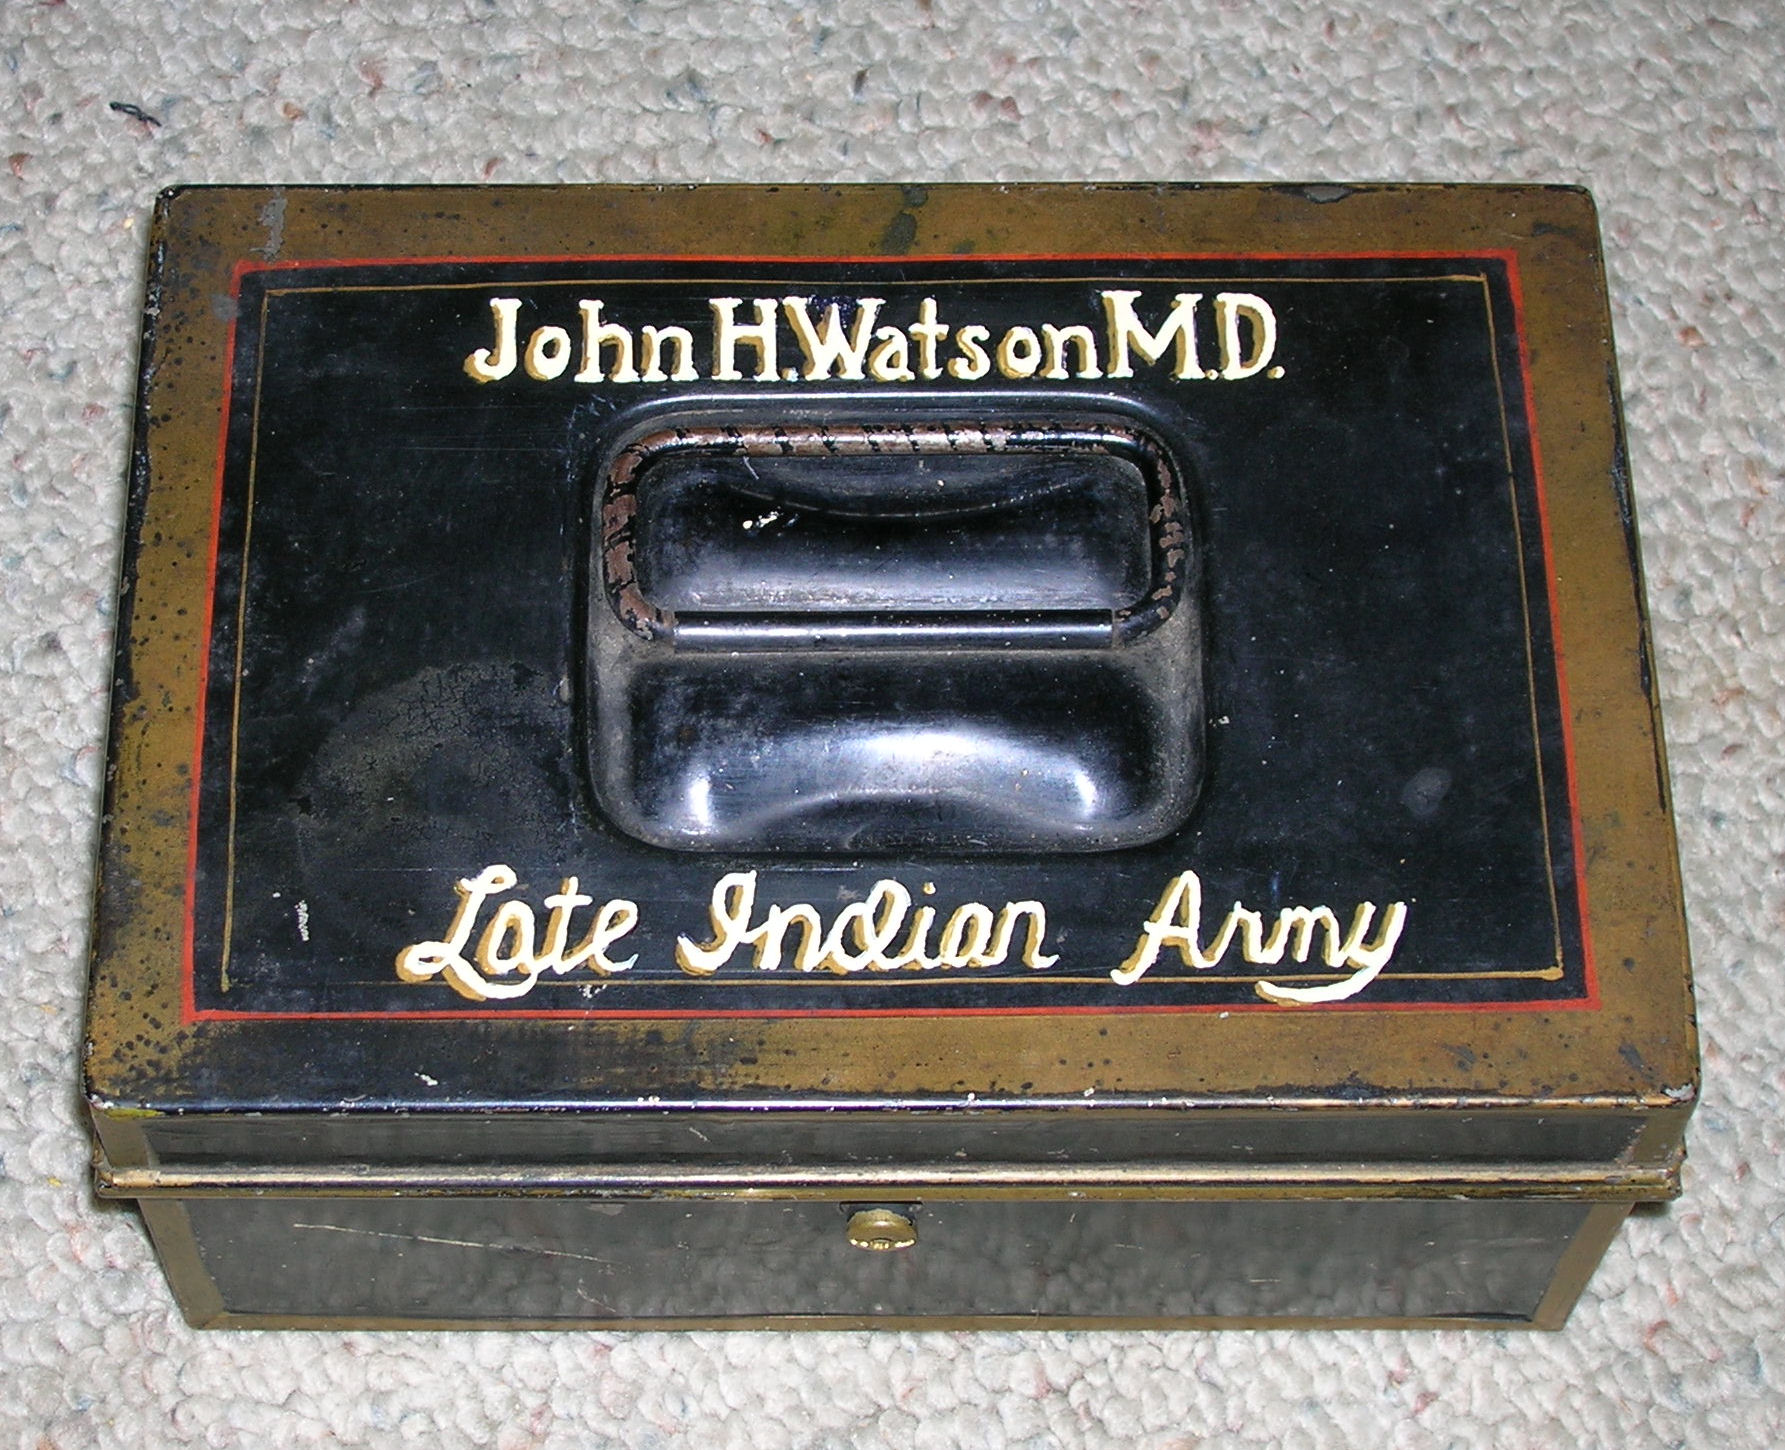 From Watson's Tin Box: The Resident Patient